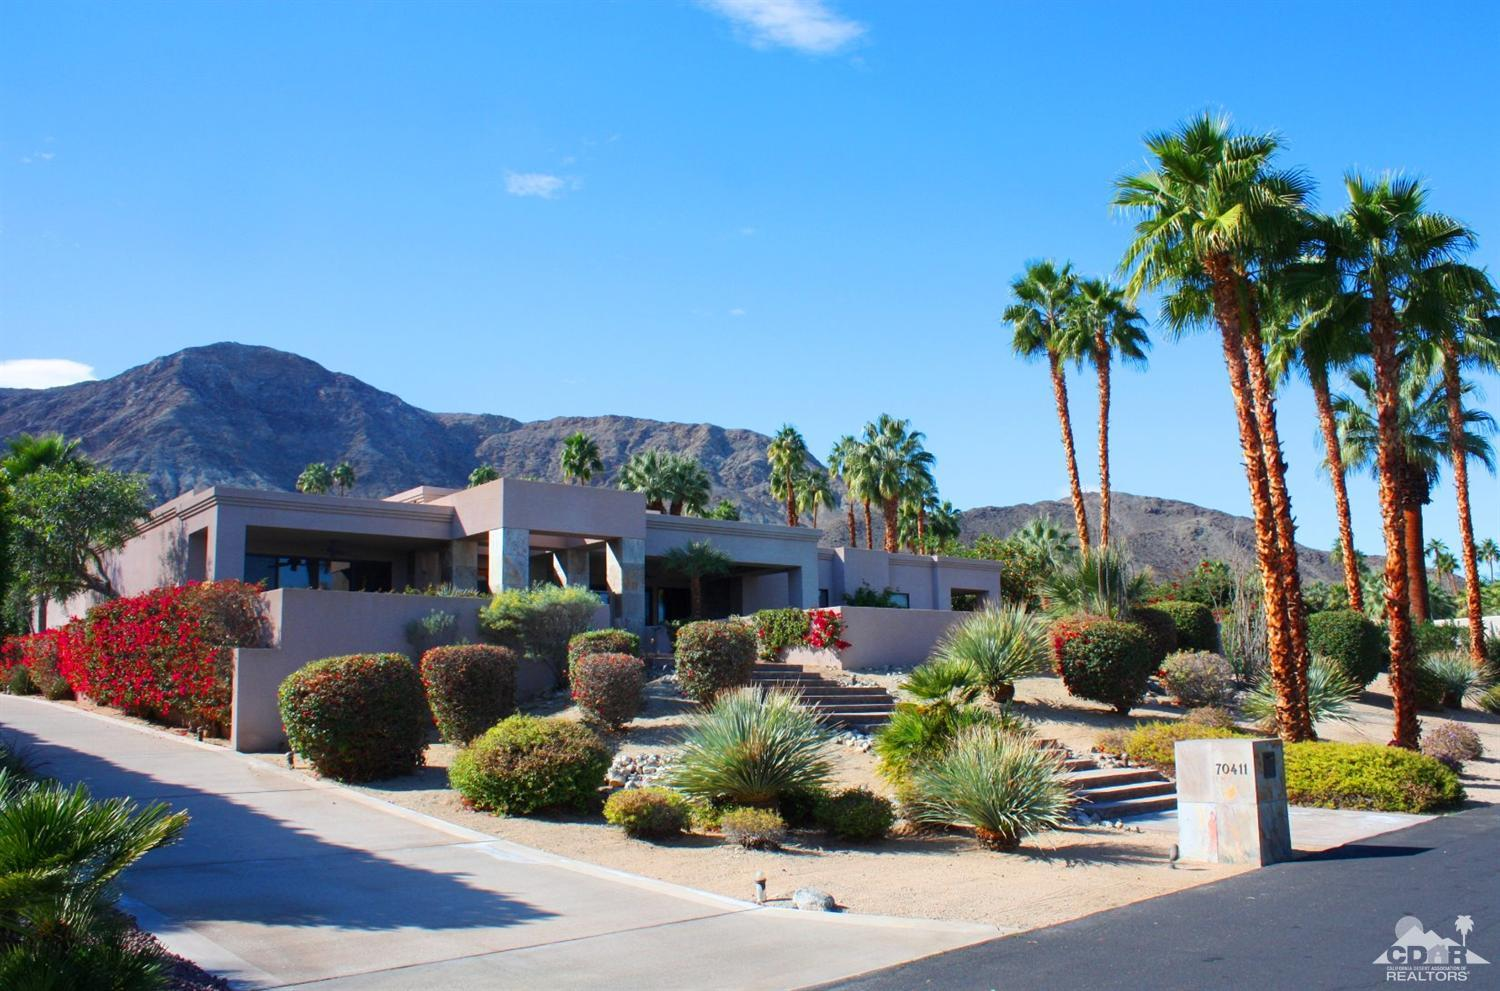 70411 Placerville Rd, Rancho Mirage, CA